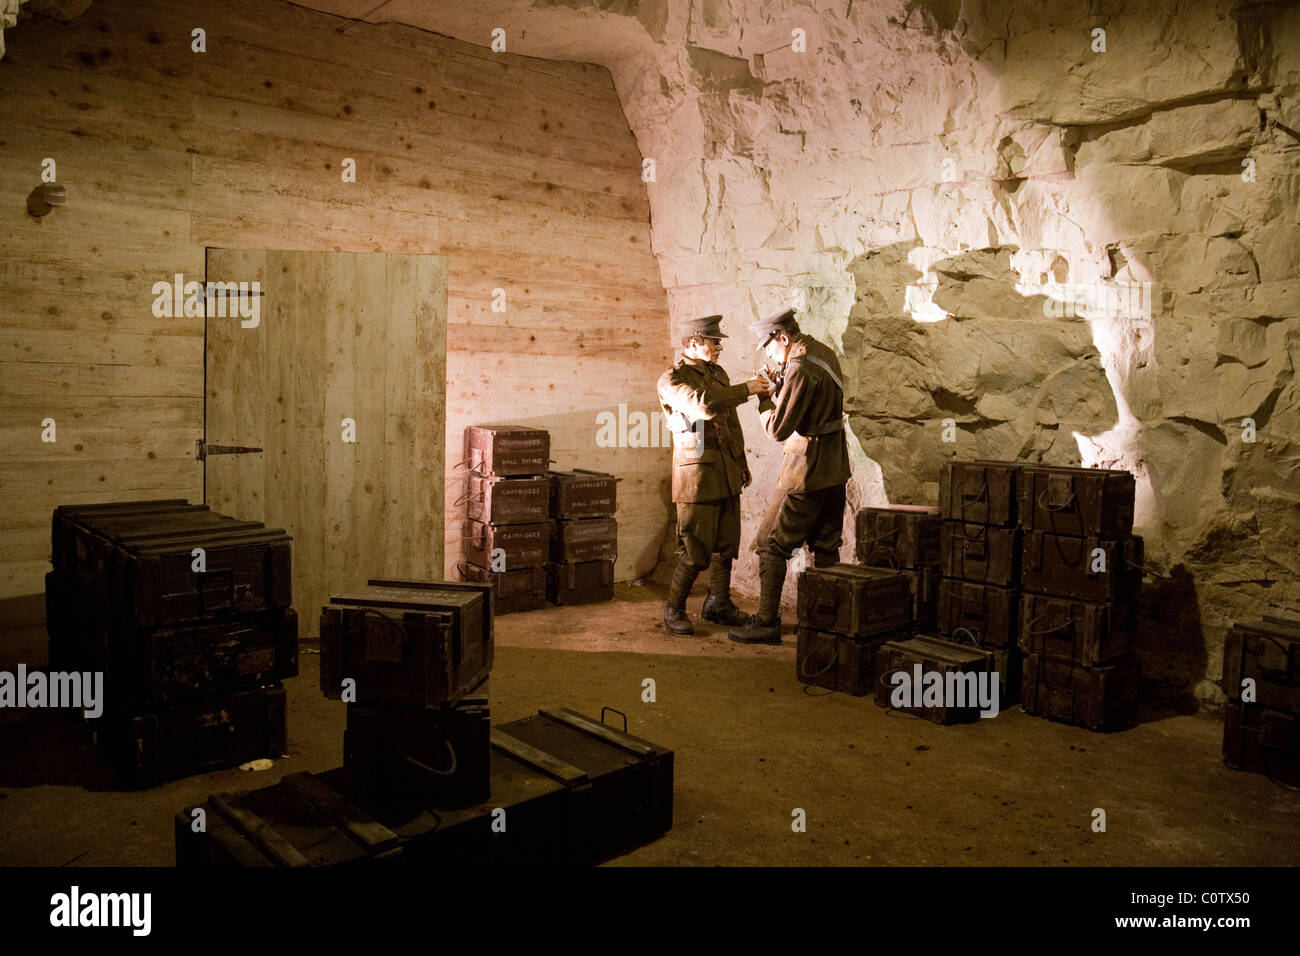 Recreation of a WW2 scene with soldiers, Chislehurst Caves, Chislehurst, Kent, UK - Stock Image